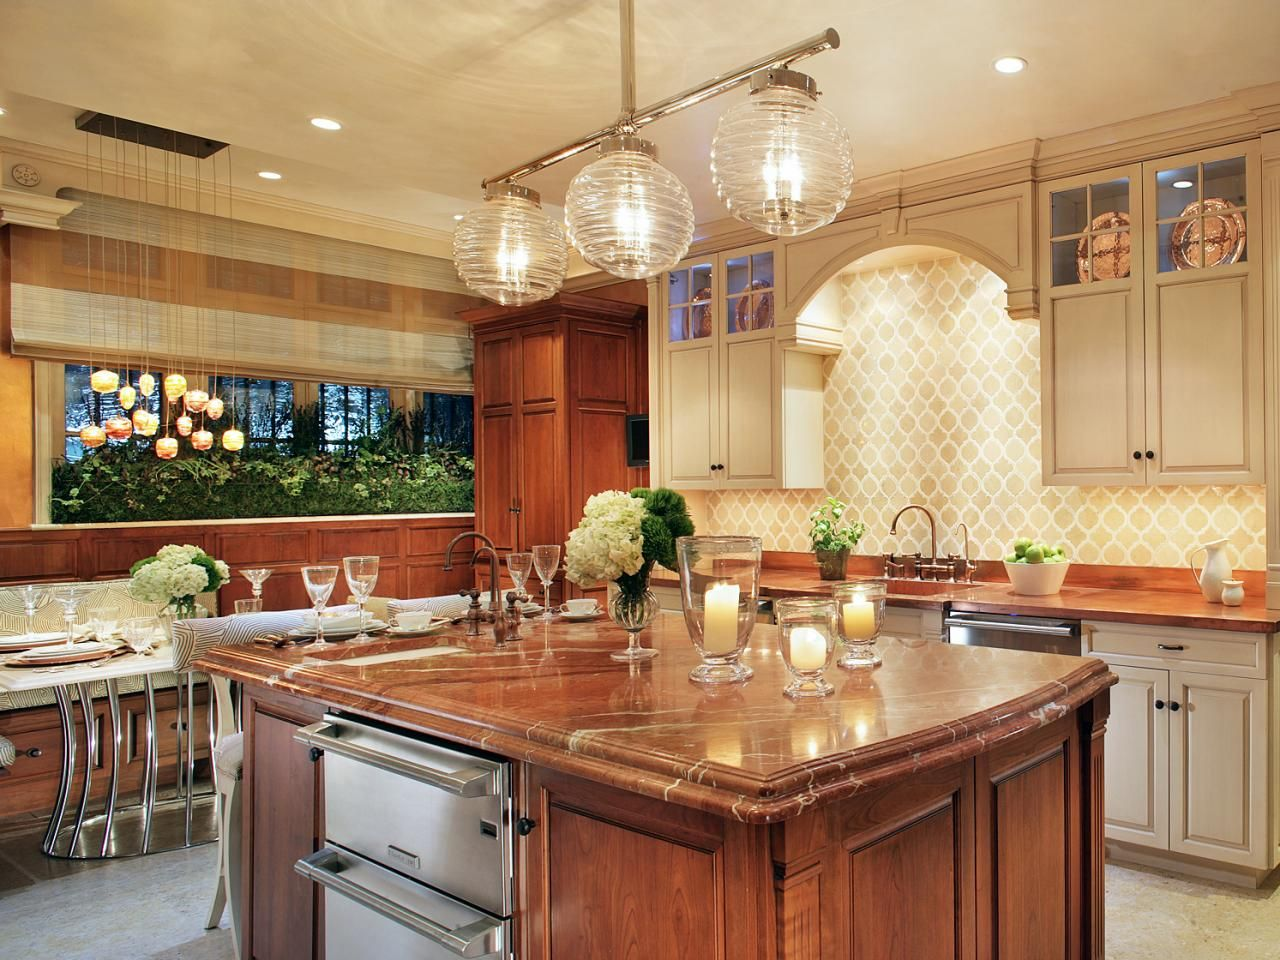 Kitchen Cabinets Regina Kitchen Window Pictures The Best Options Styles And Ideas